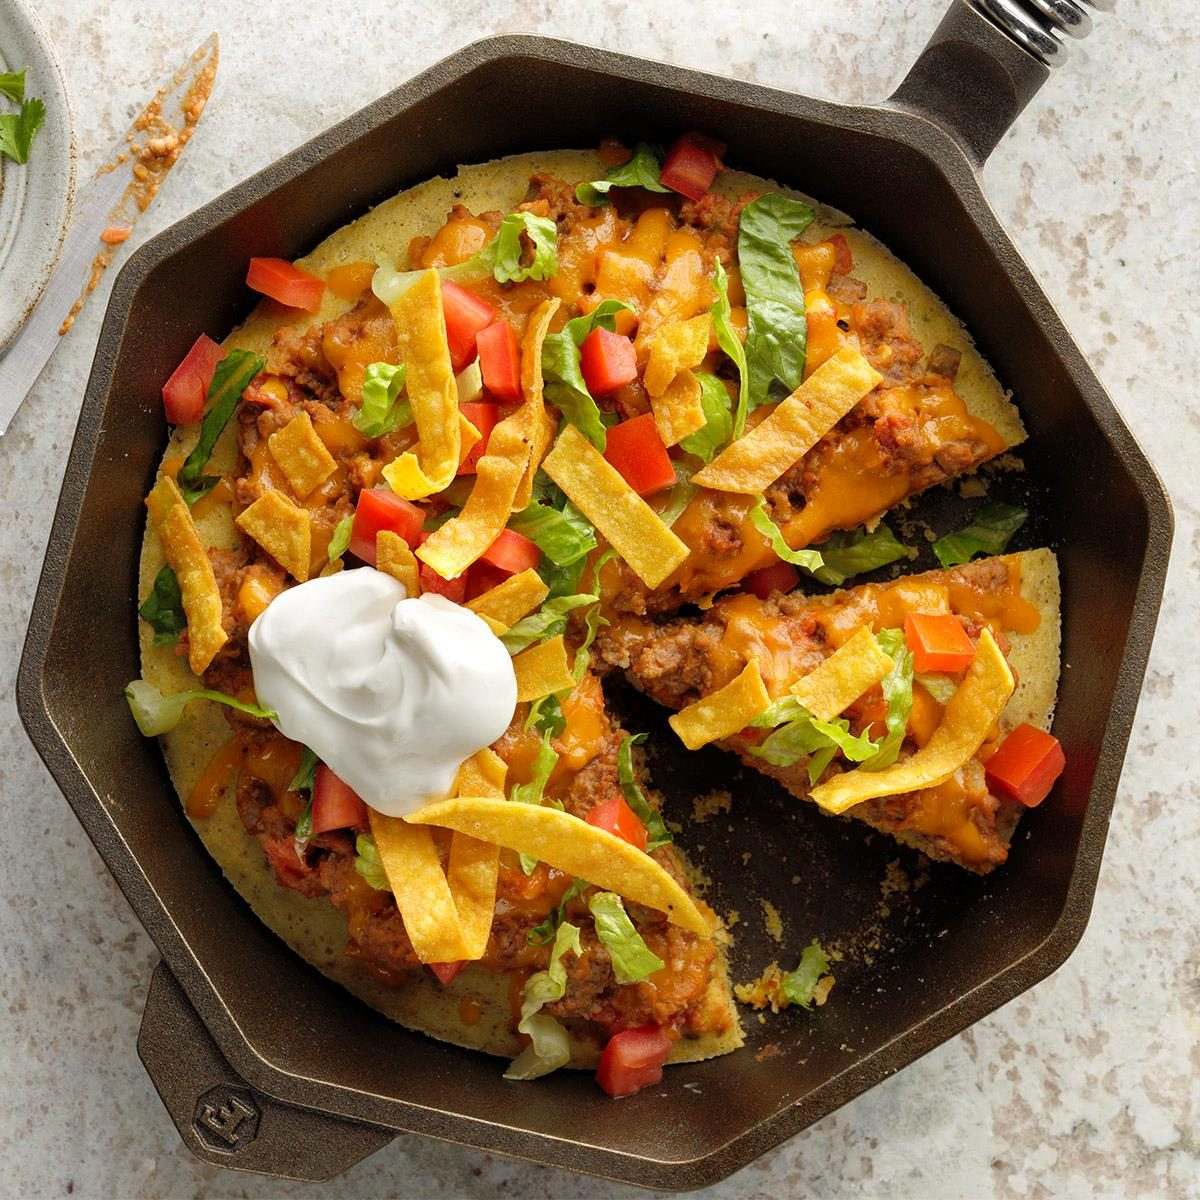 October 8: Taco Skillet Pizza with Cornbread Crust